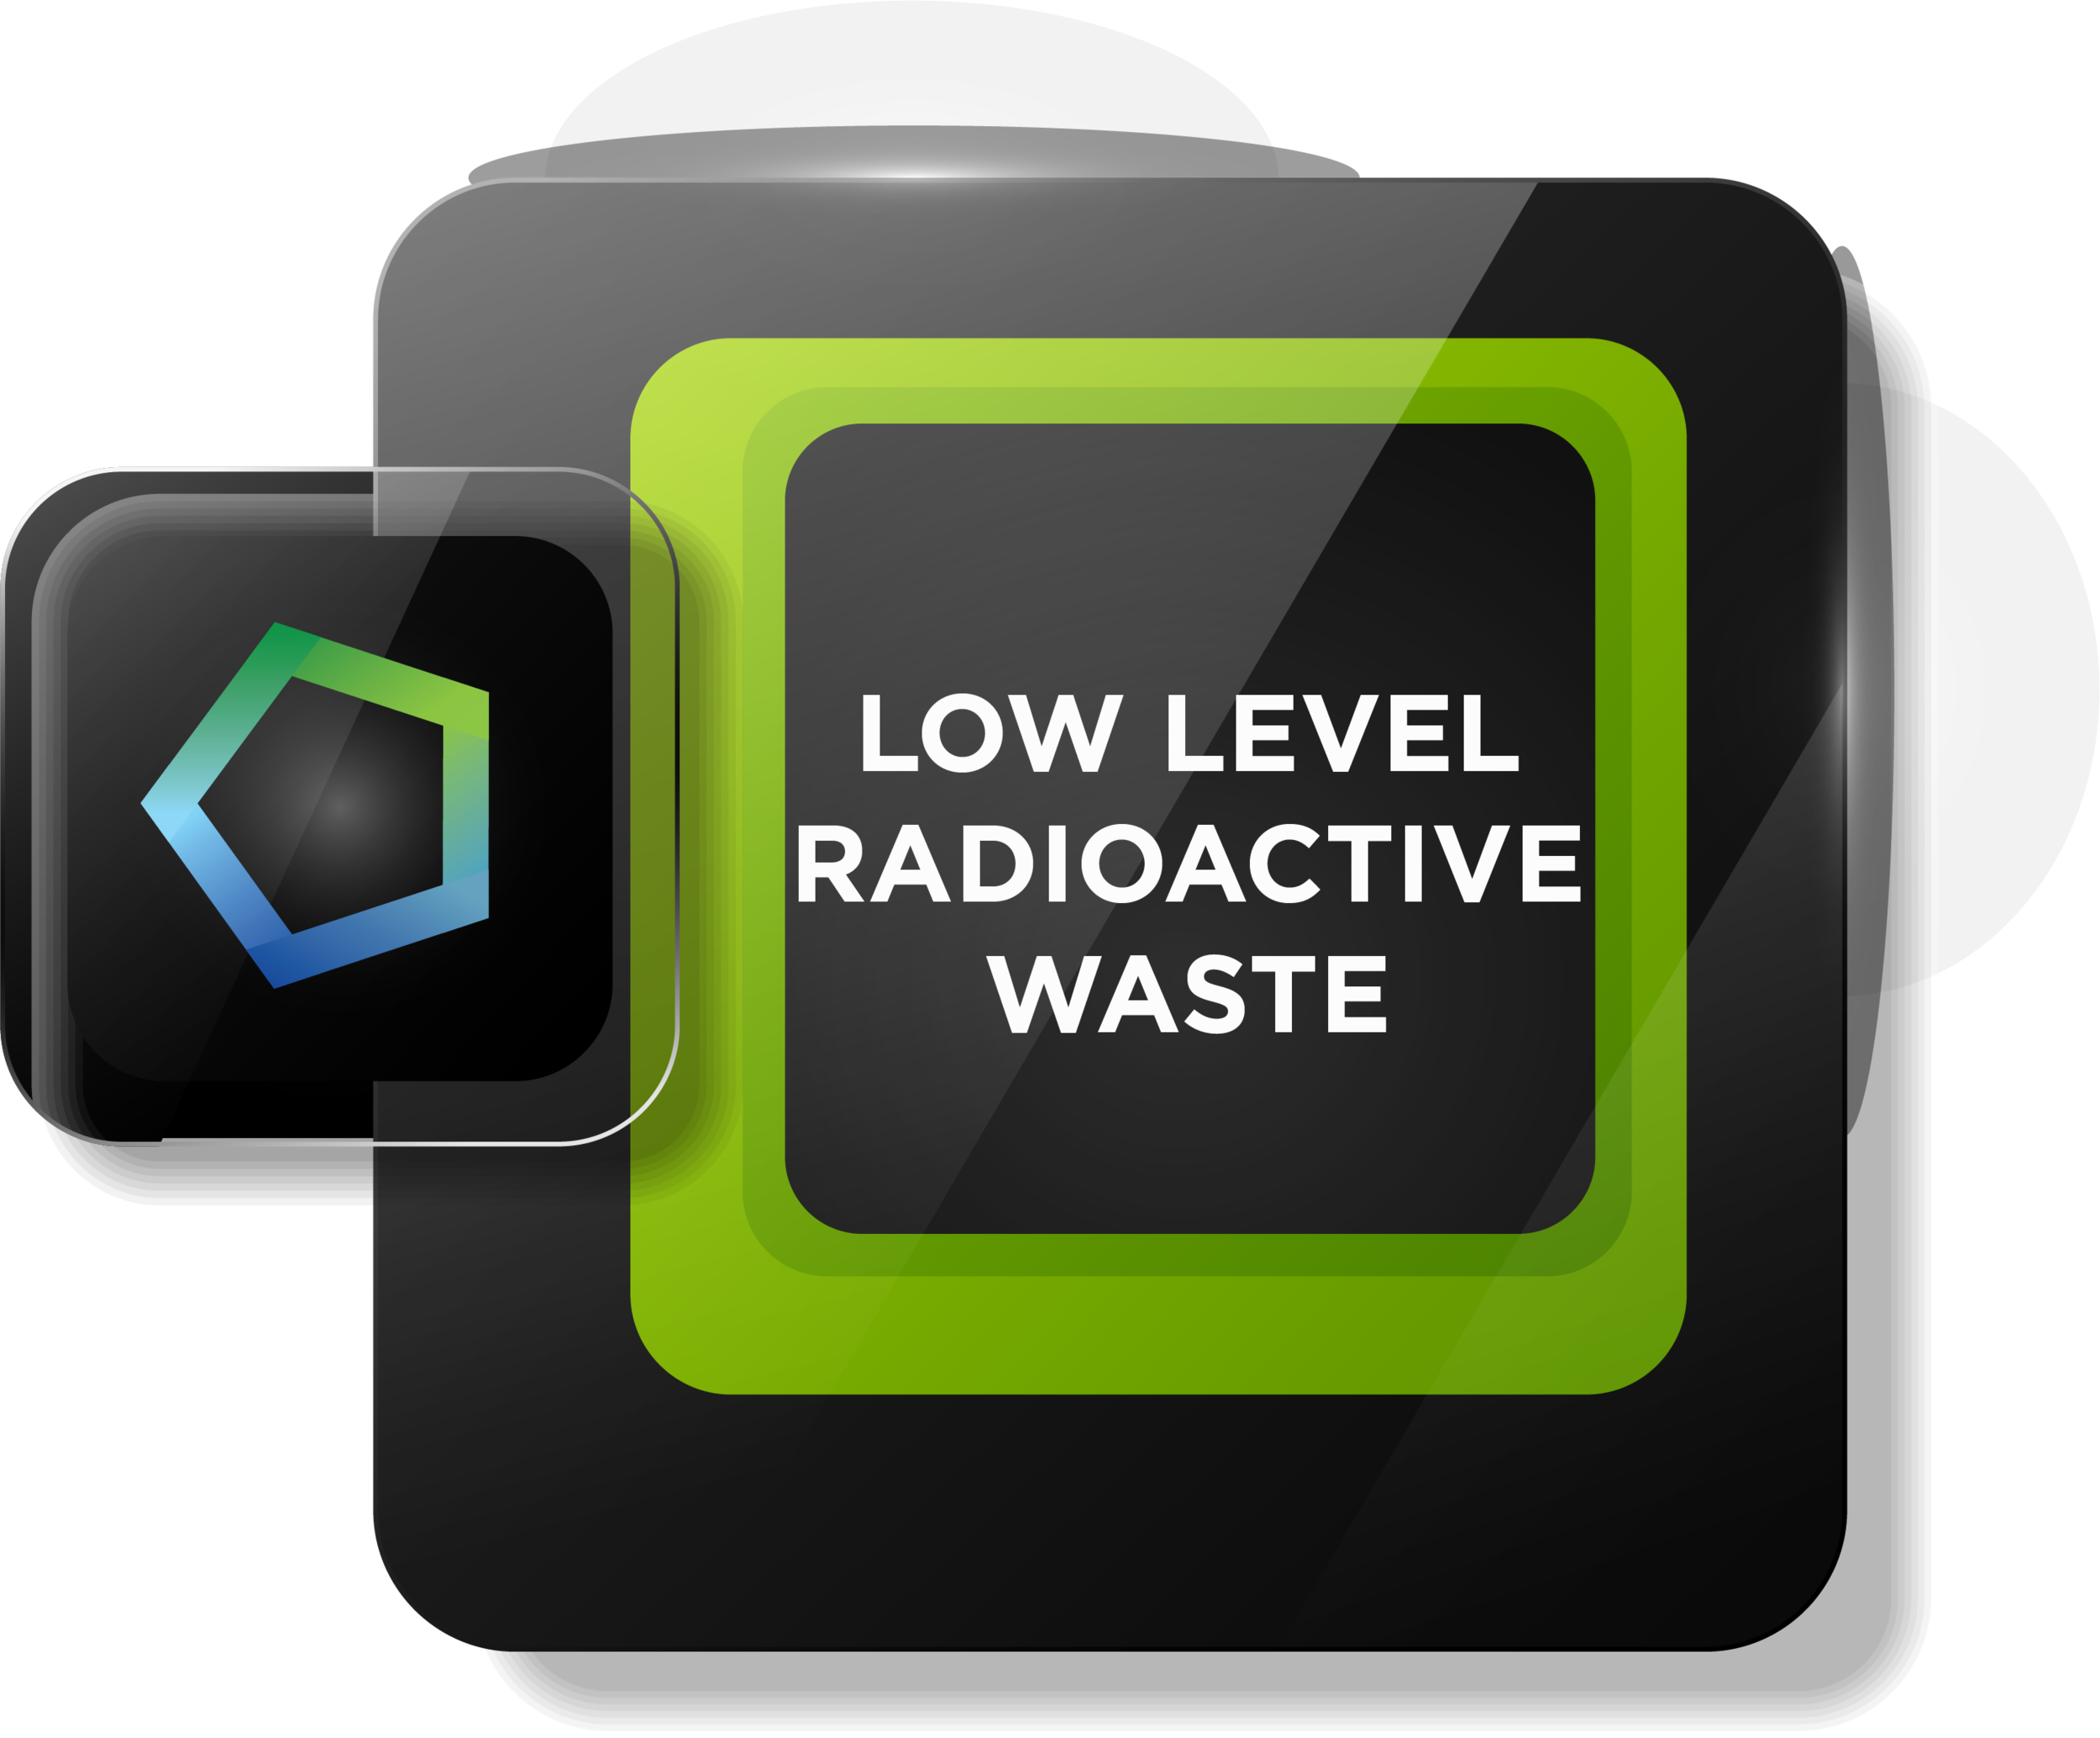 Low Level Radioactive Waste.png